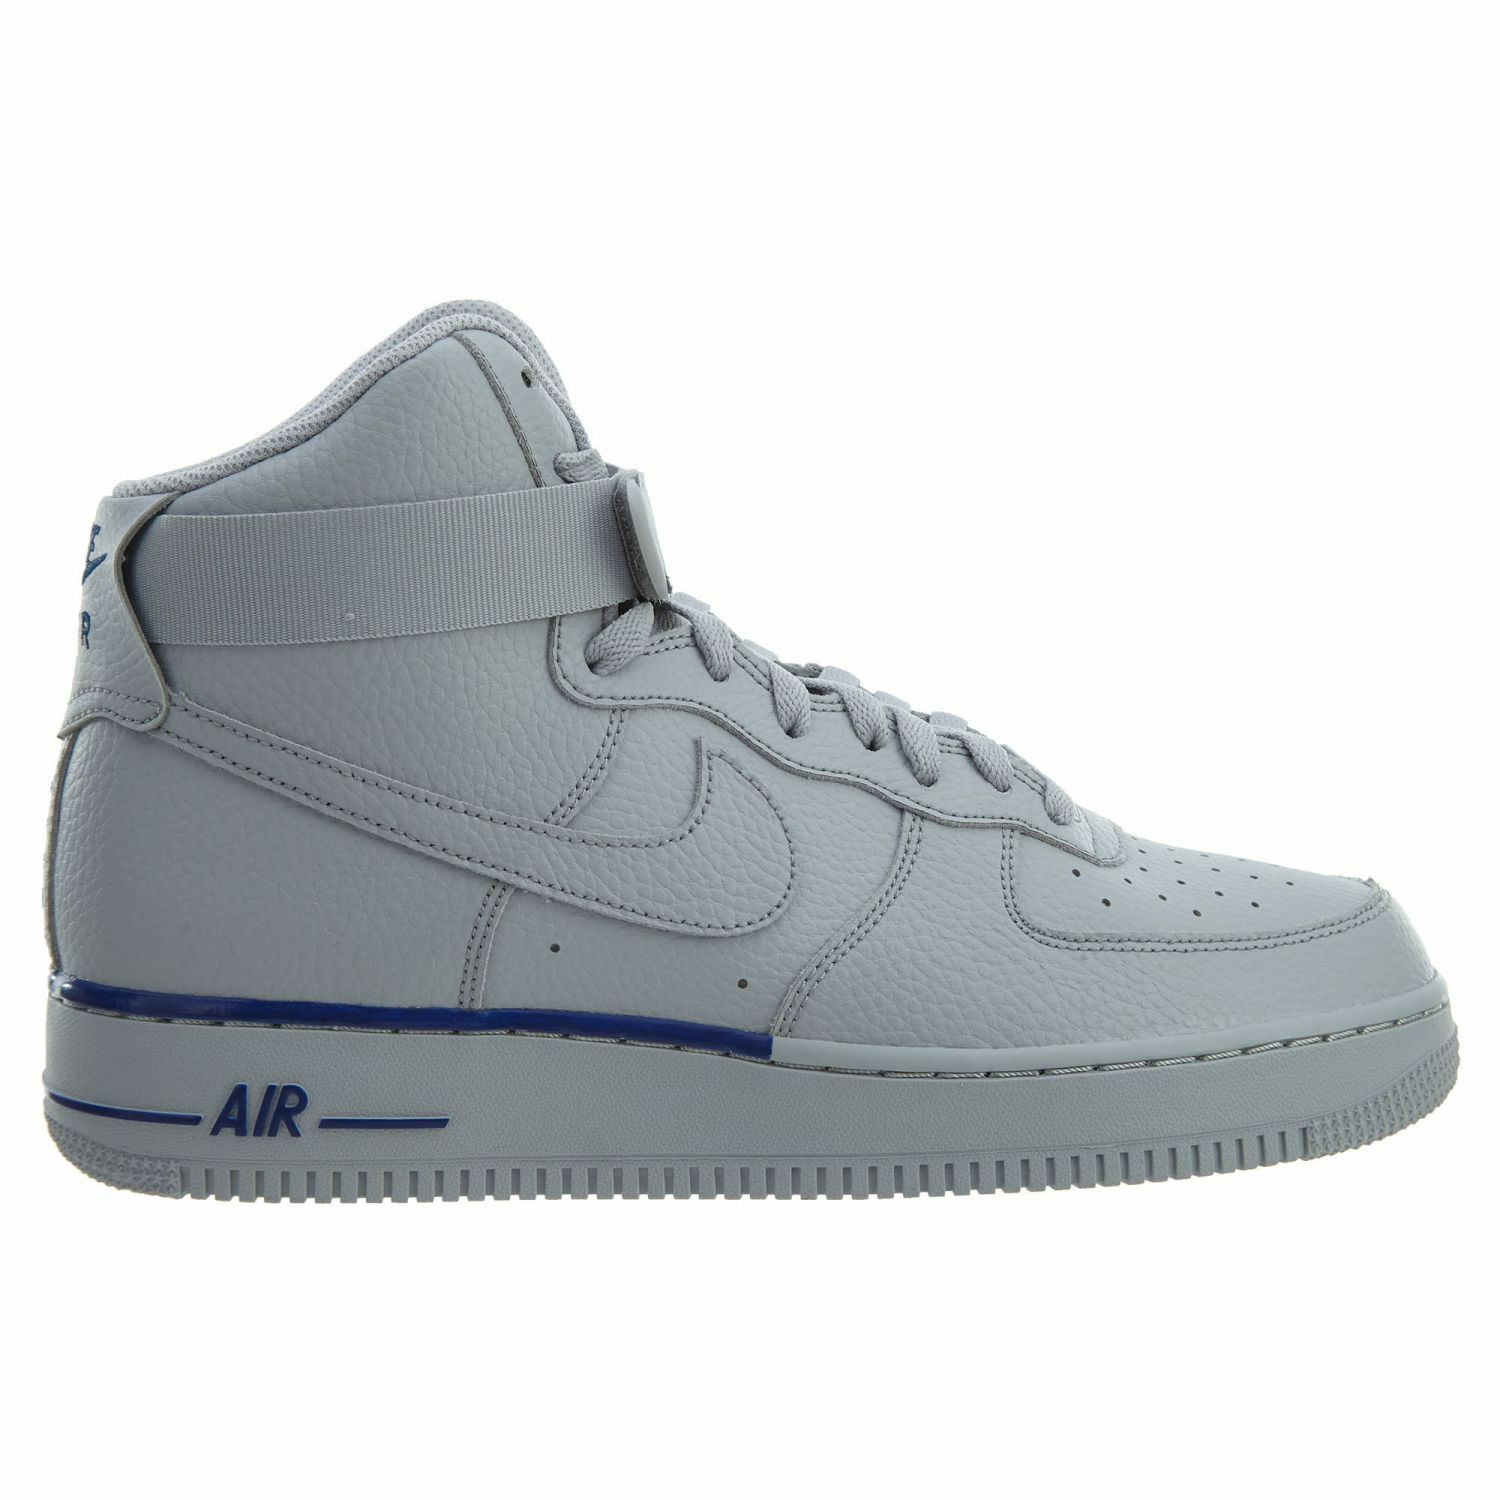 Nike Air Force 1 High '07 Uomo 315121-045 Wolf Grey Deep Royal Shoes Size 9